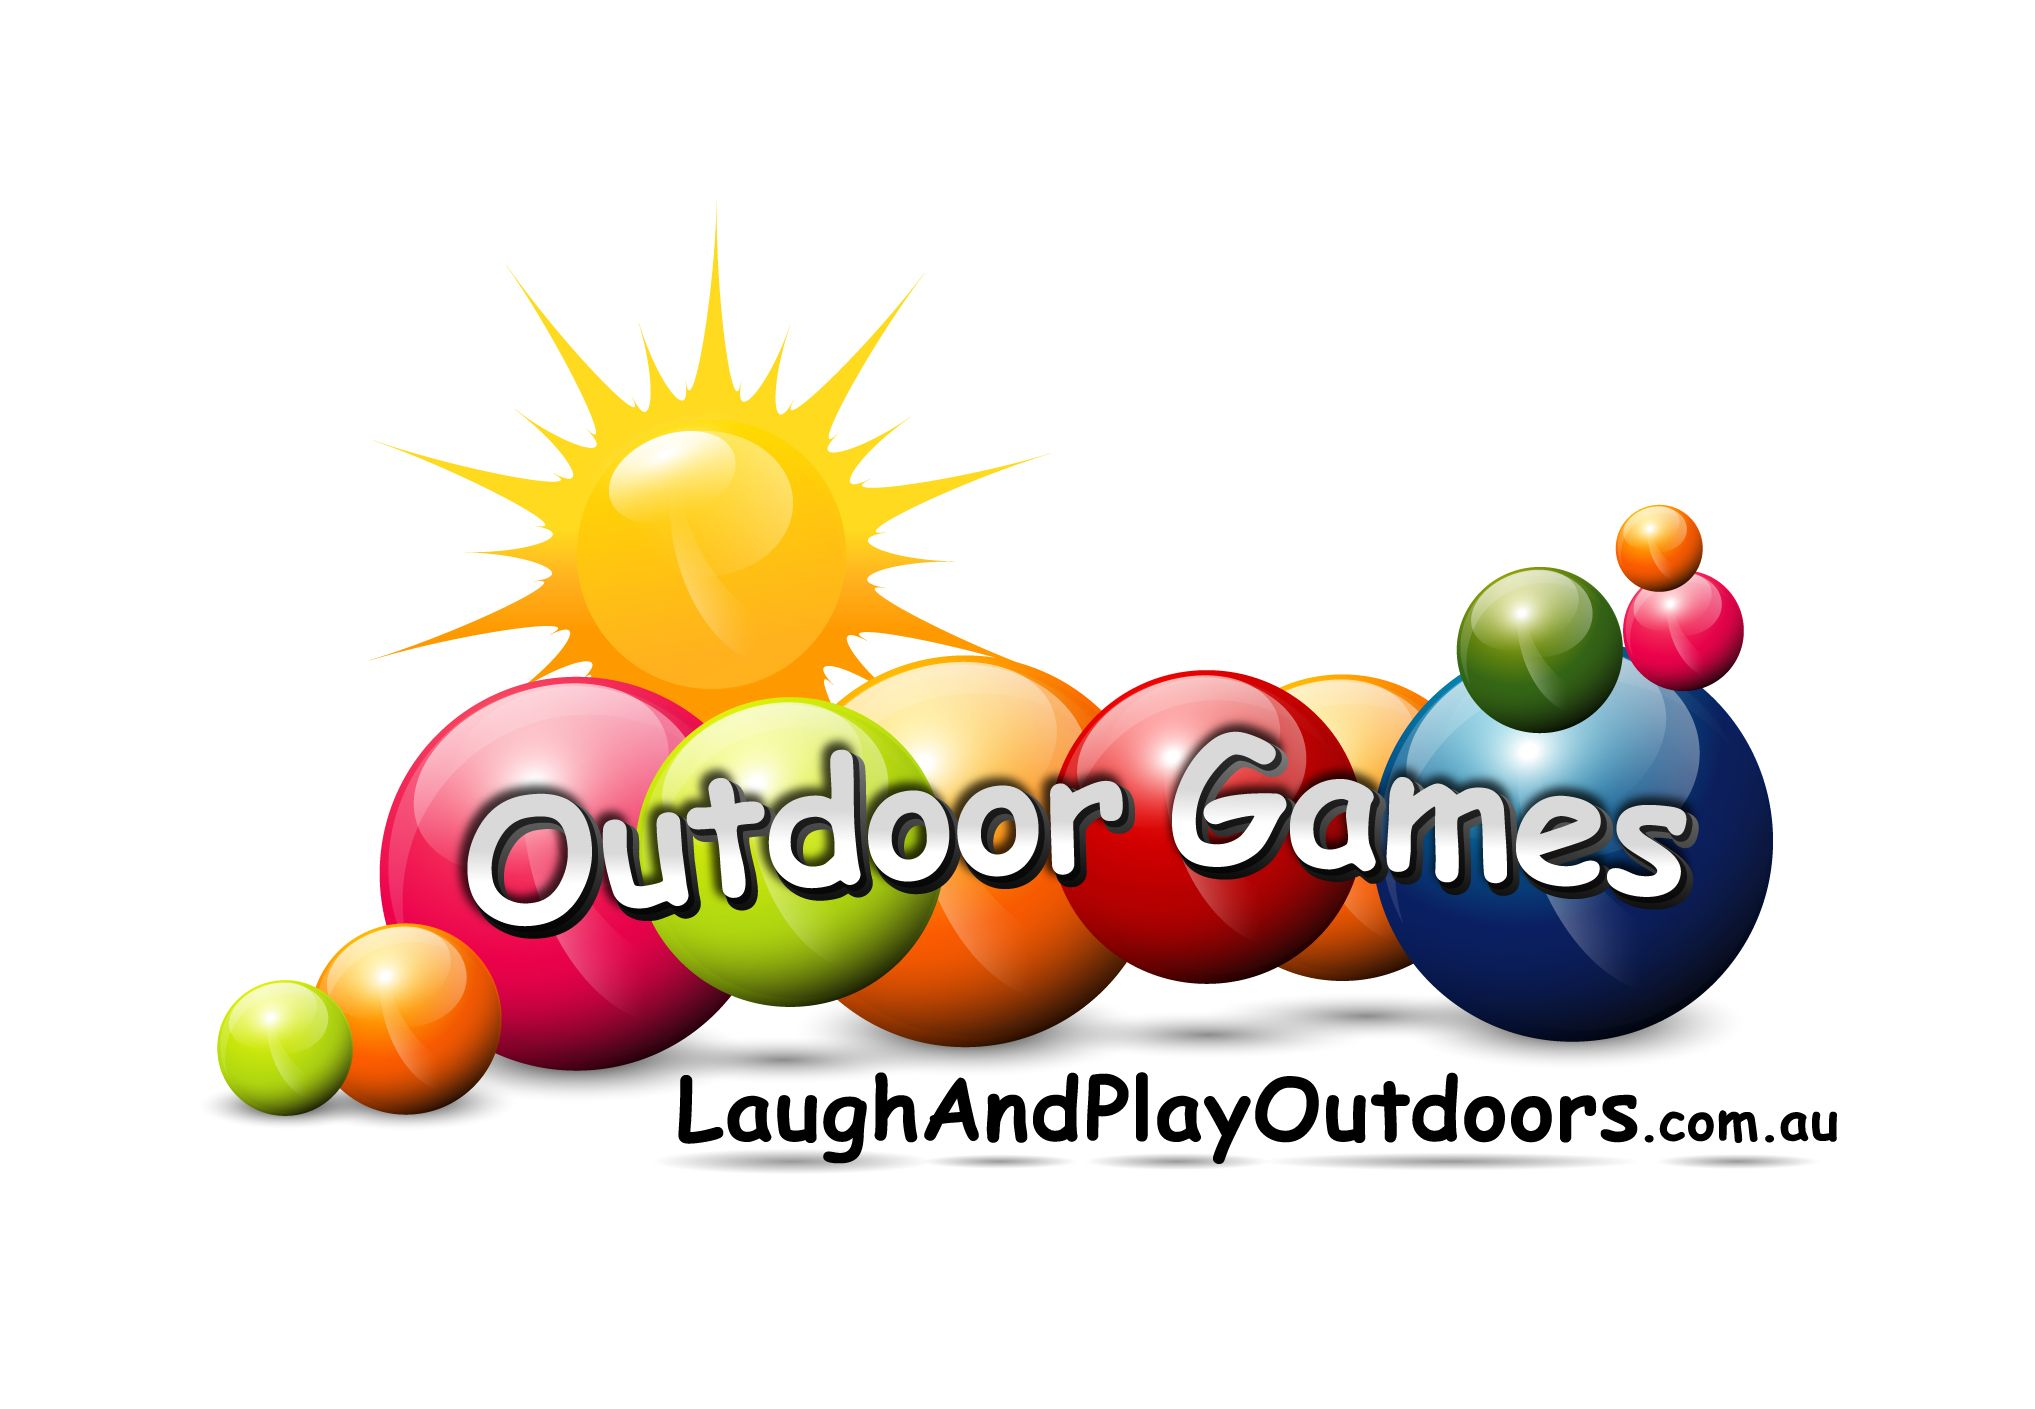 Outdoor Games at Laugh And Play Outdoors